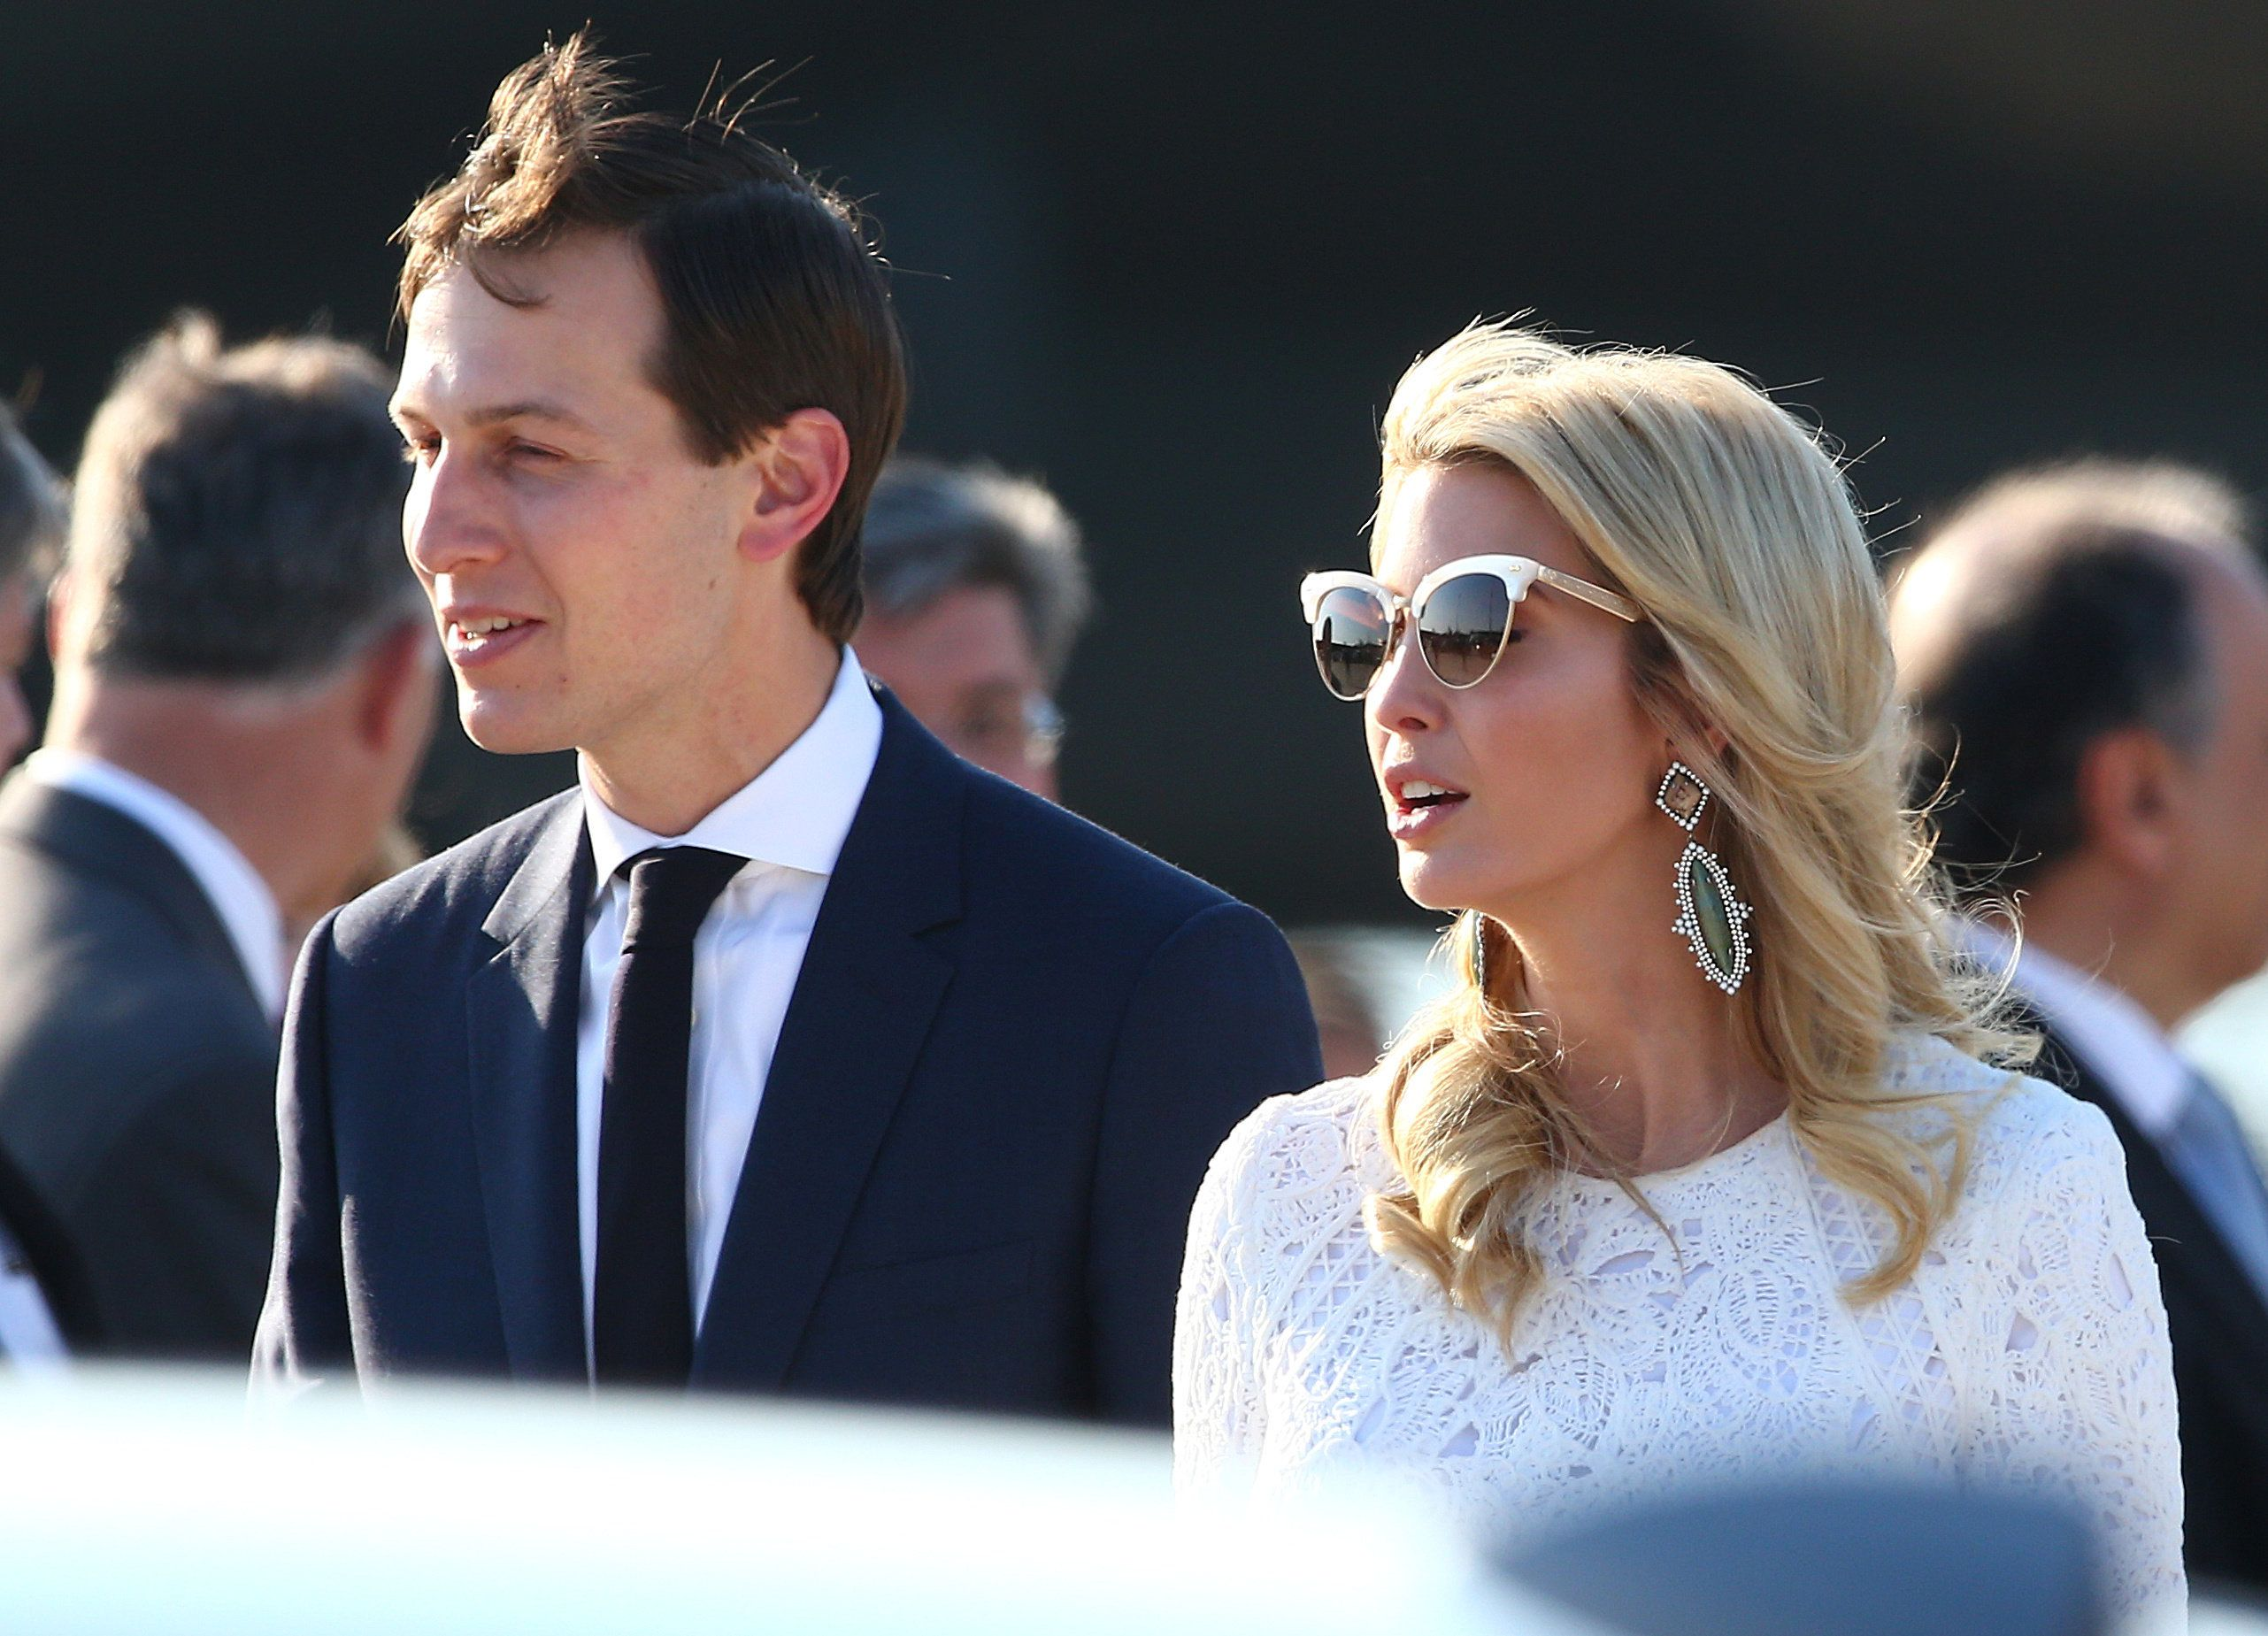 White House senior advisor Jared Kushner and his wife Ivanka Trump arrive at the Leonardo da Vinci-Fiumicino Airport in Rome, Italy, May 23, 2017.       REUTERS/Alessandro Bianchi